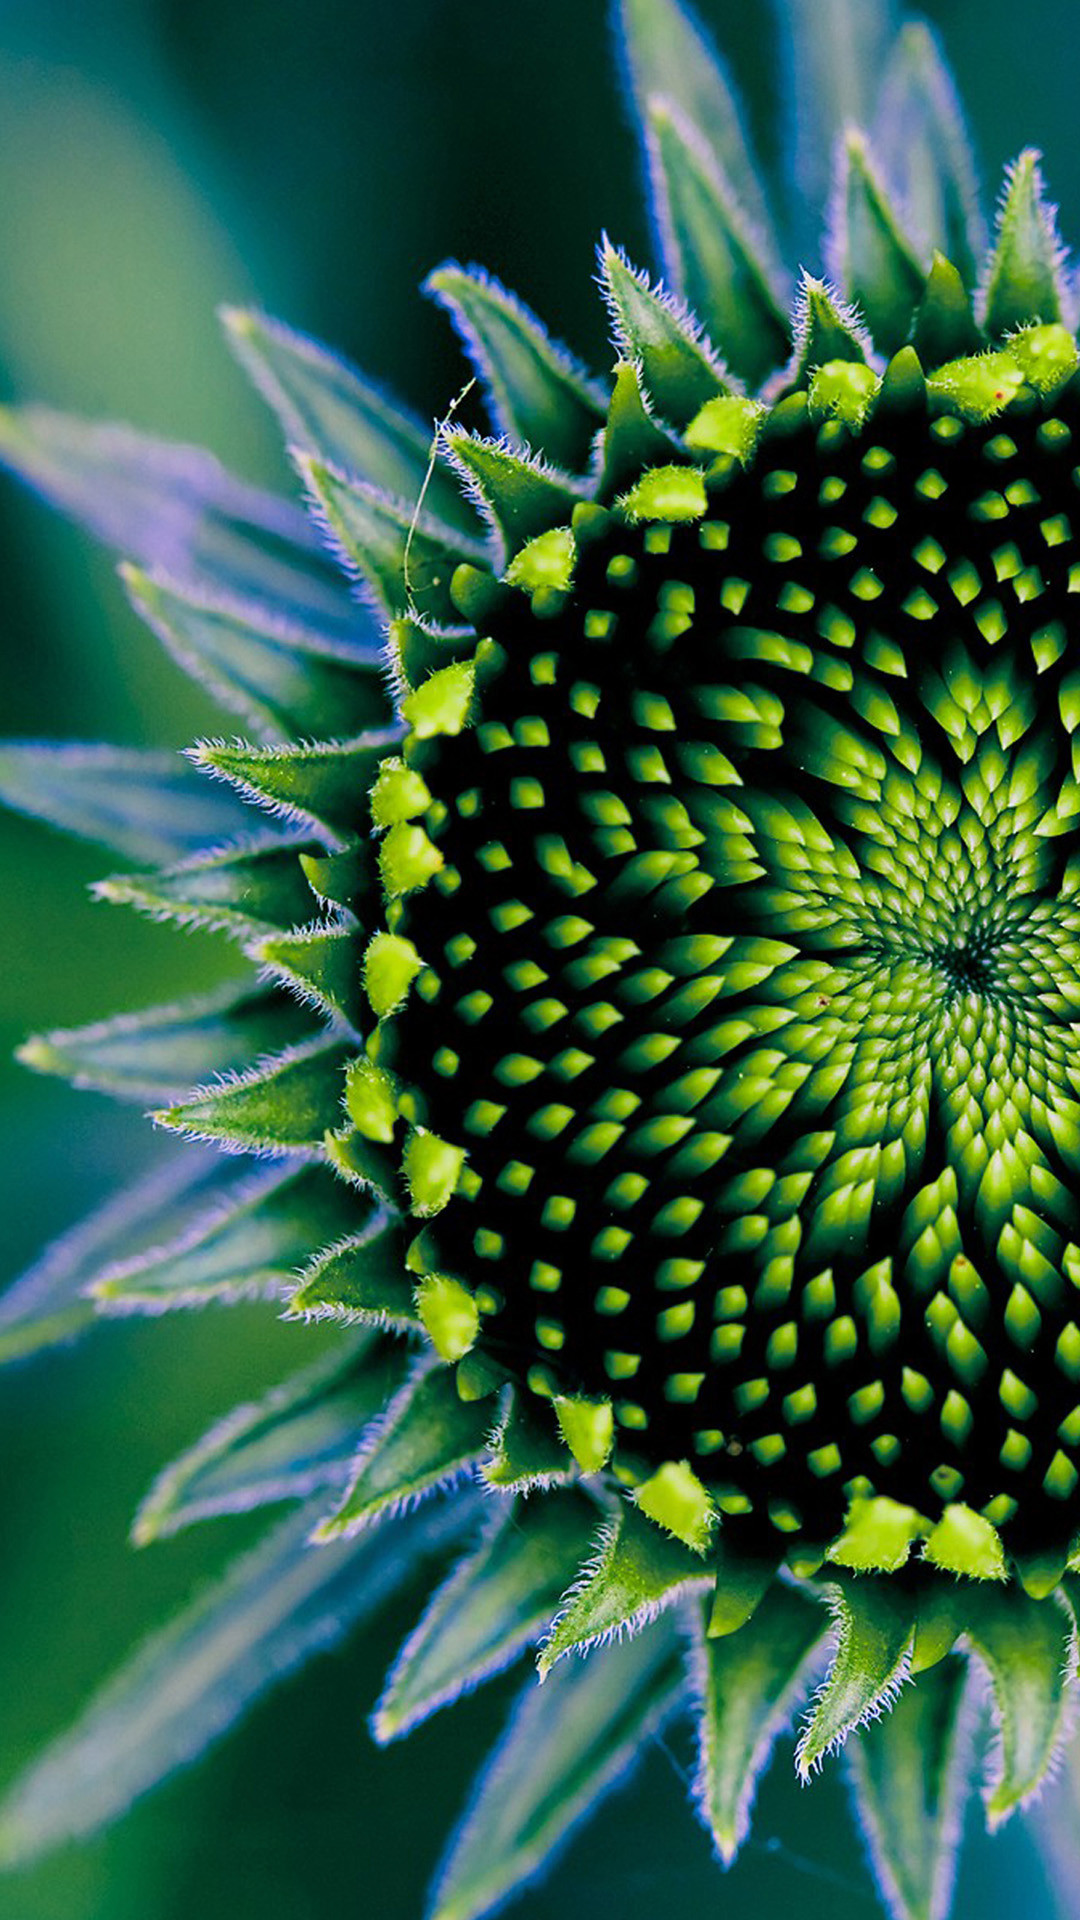 Very Good Plant Iphone 6 Plus Wallpaper   Data Src - 10 Most Amazing Symmetry In Nature - HD Wallpaper